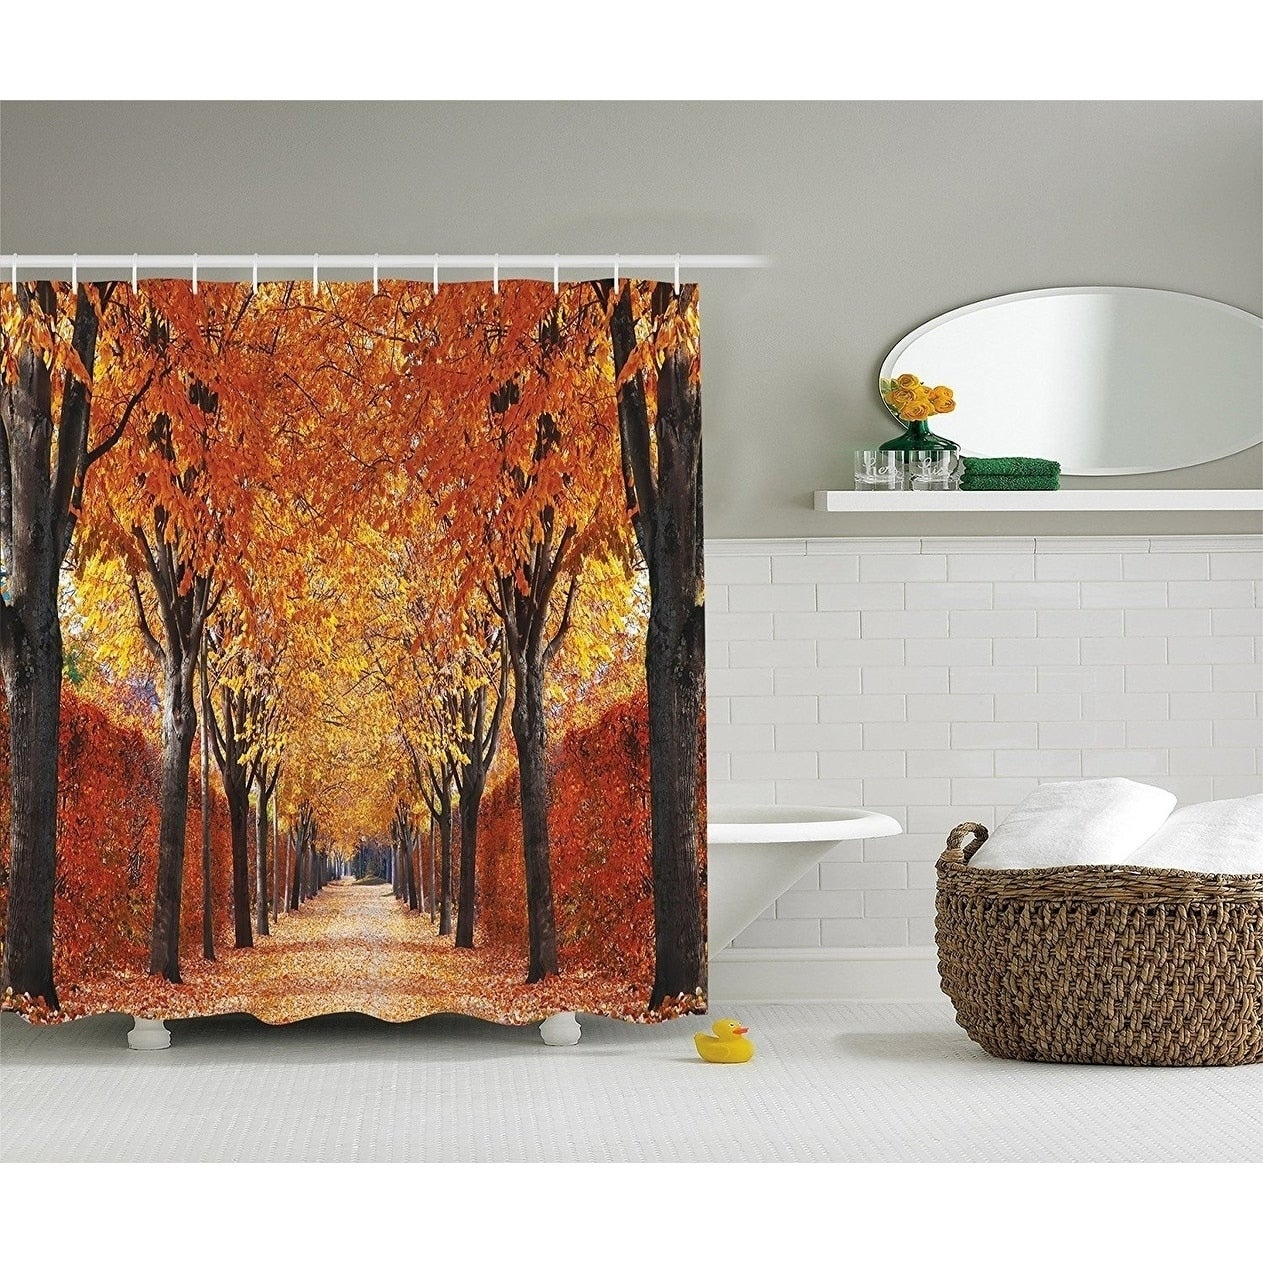 Nature Shower CurtainFoliage Forest Theme